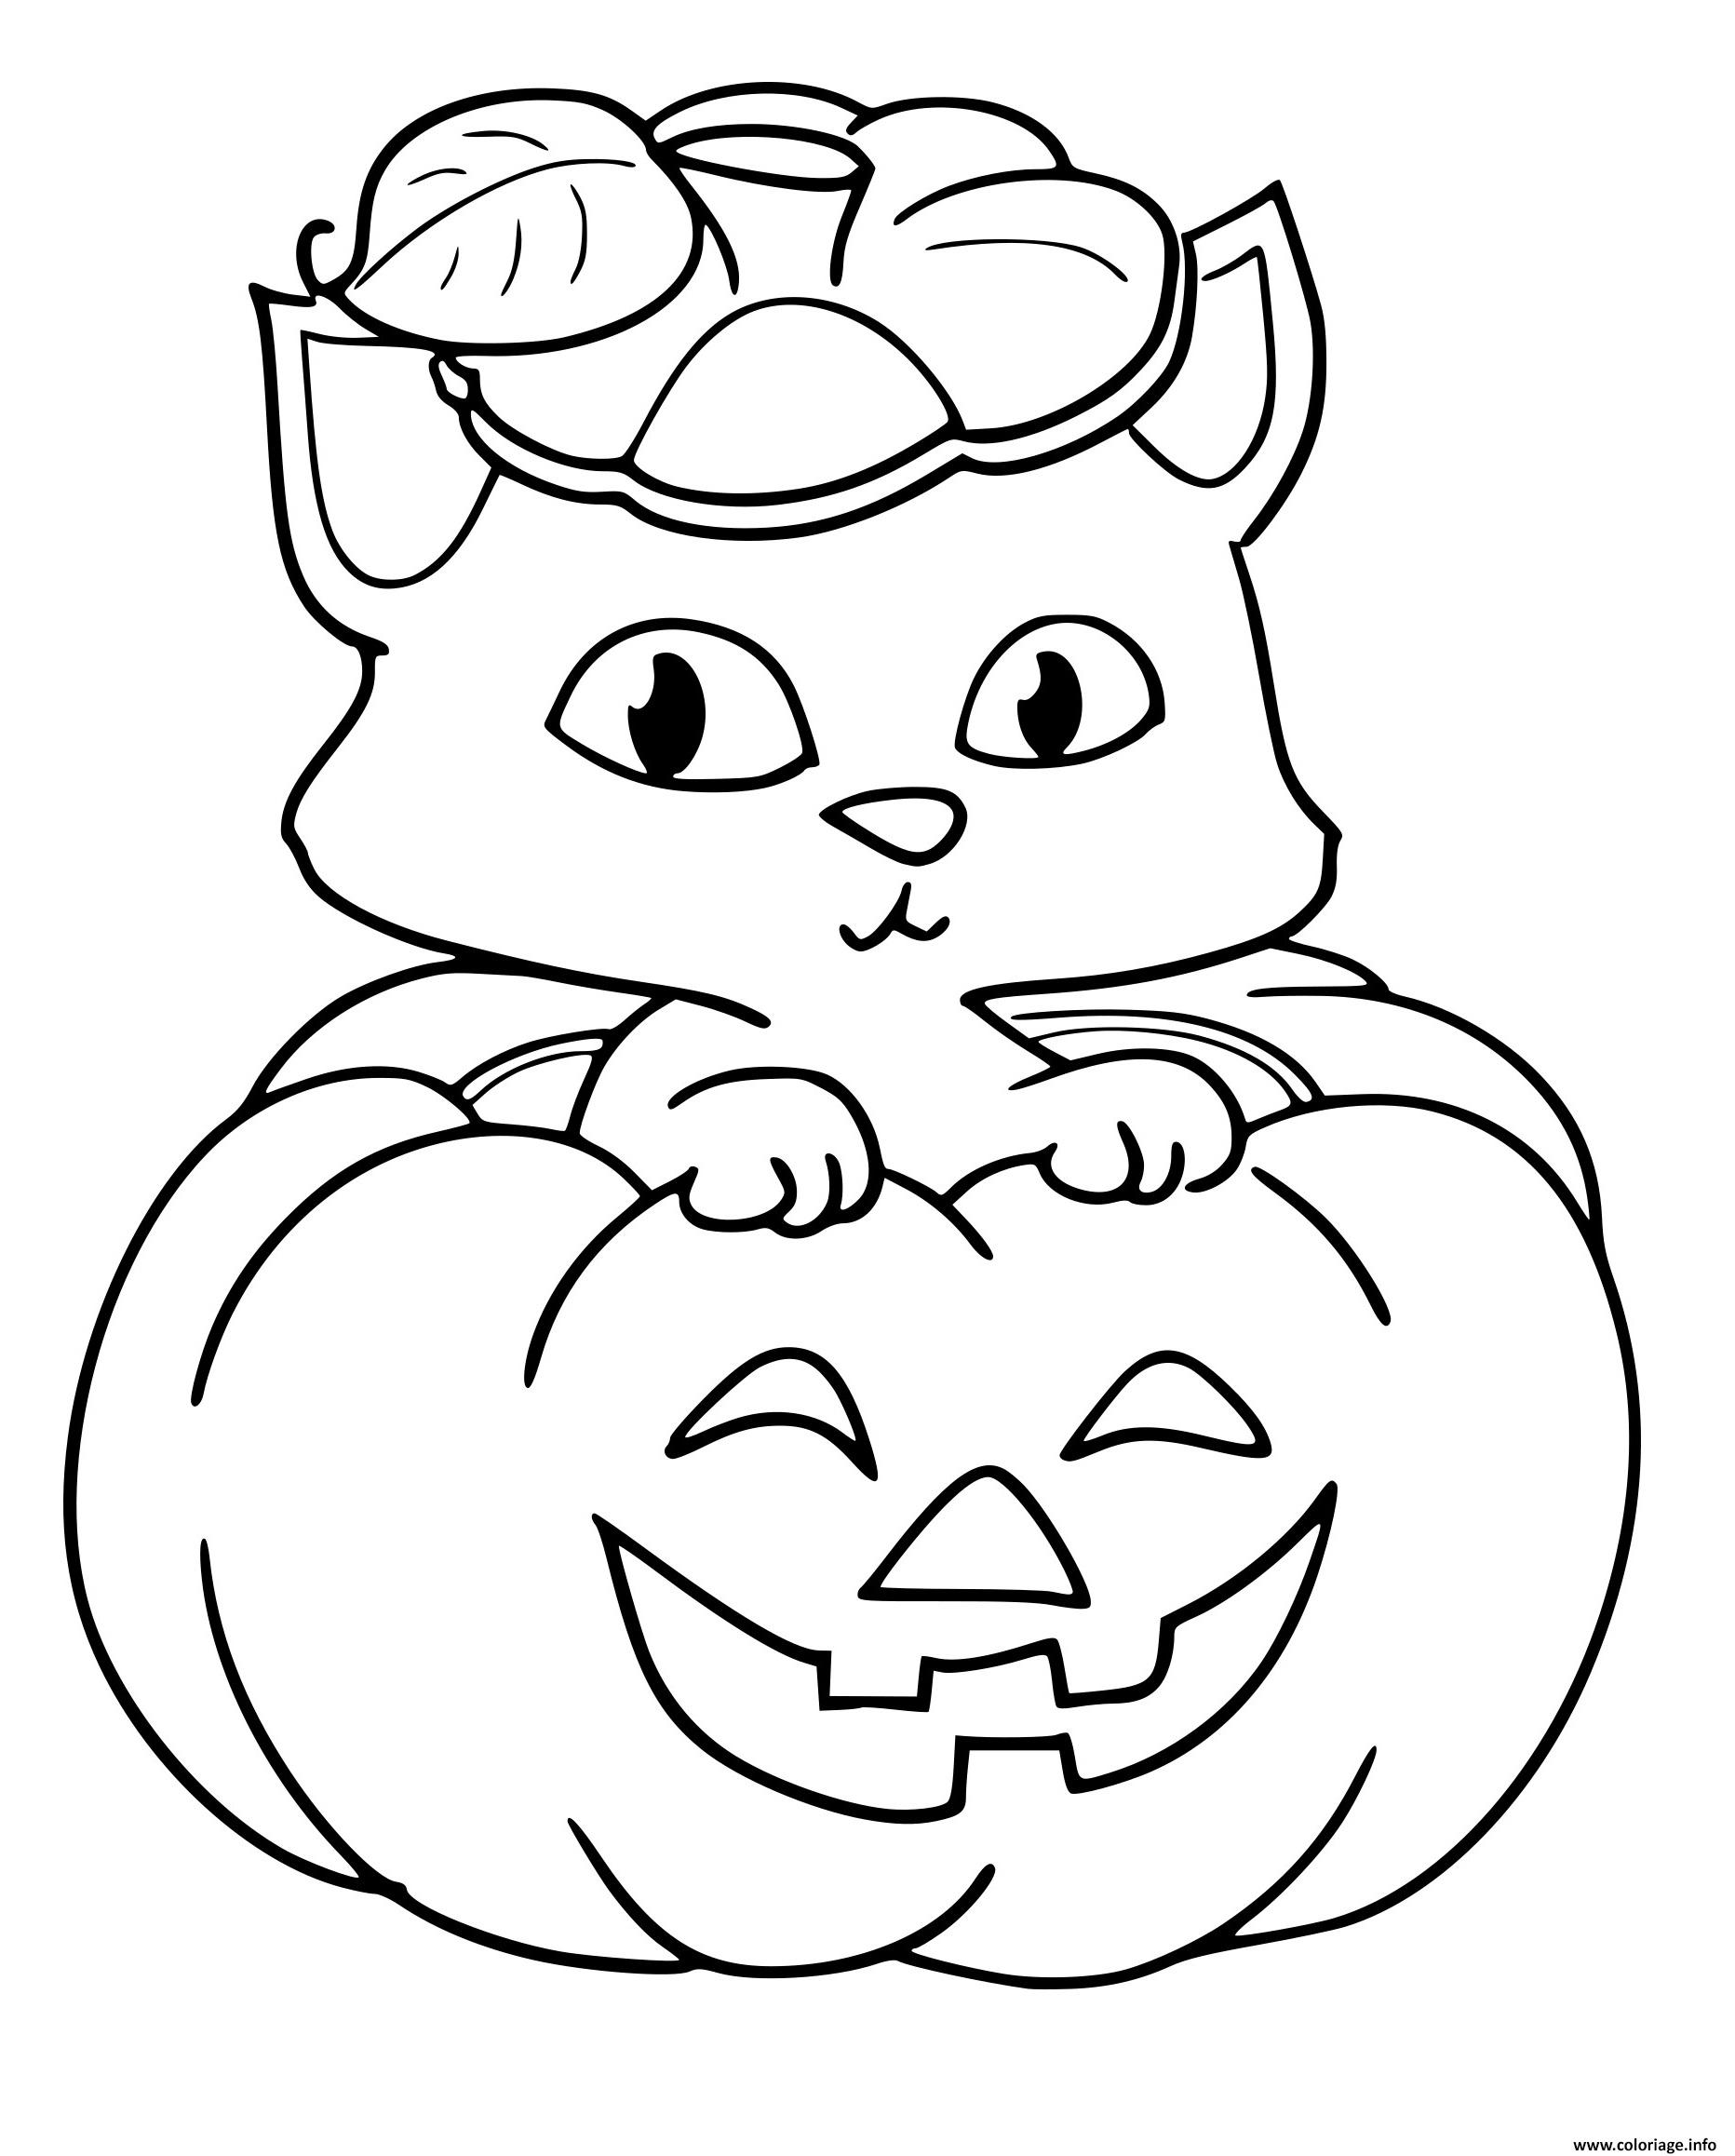 citrouille chat halloween coloriage dessin